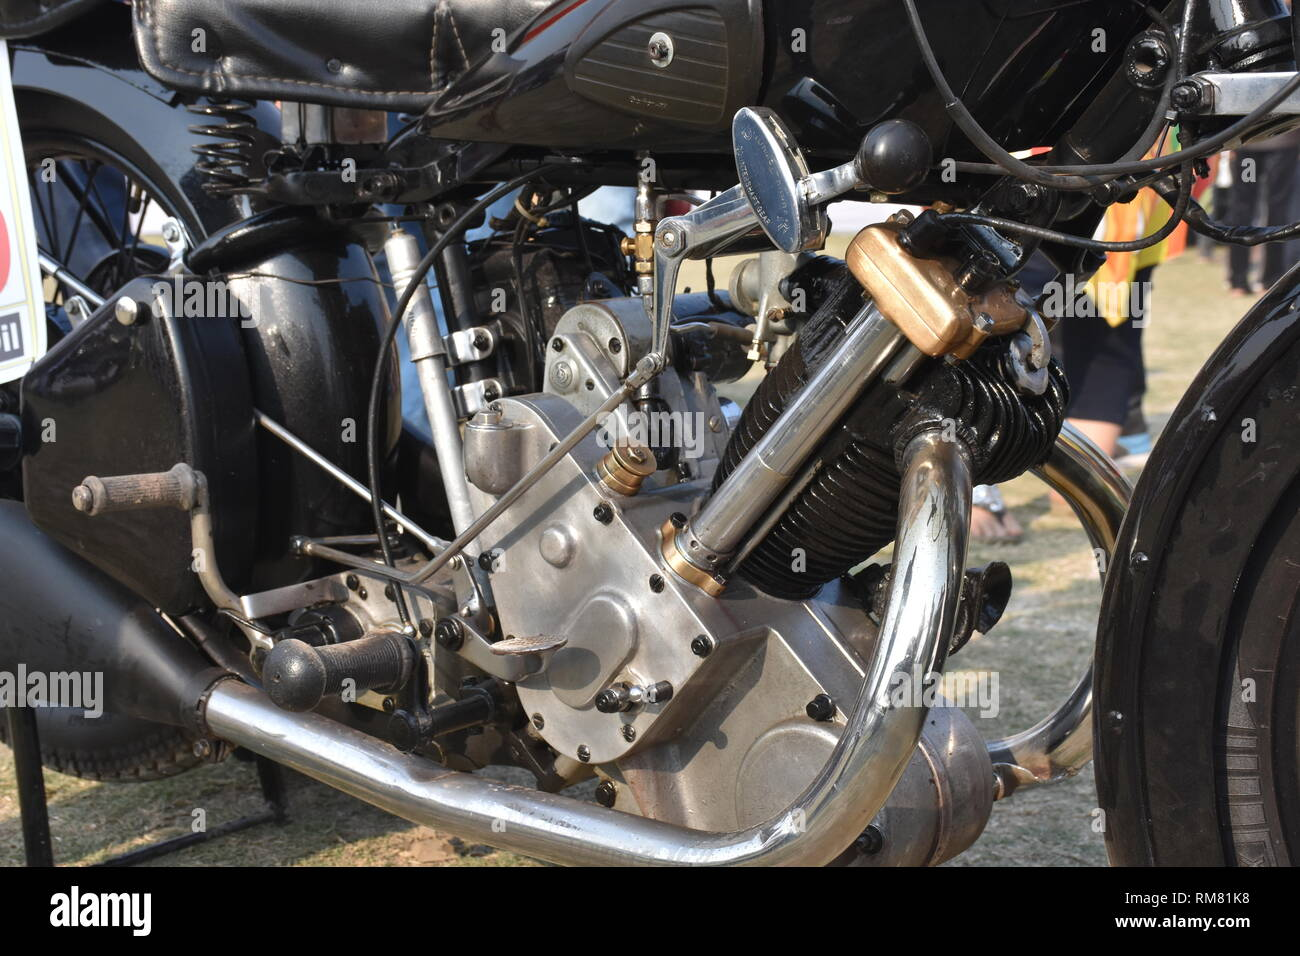 1923 Panther Sloper motorcycle engine with 6 hp, 1 cylinder 600 cc engine volume. - Stock Image